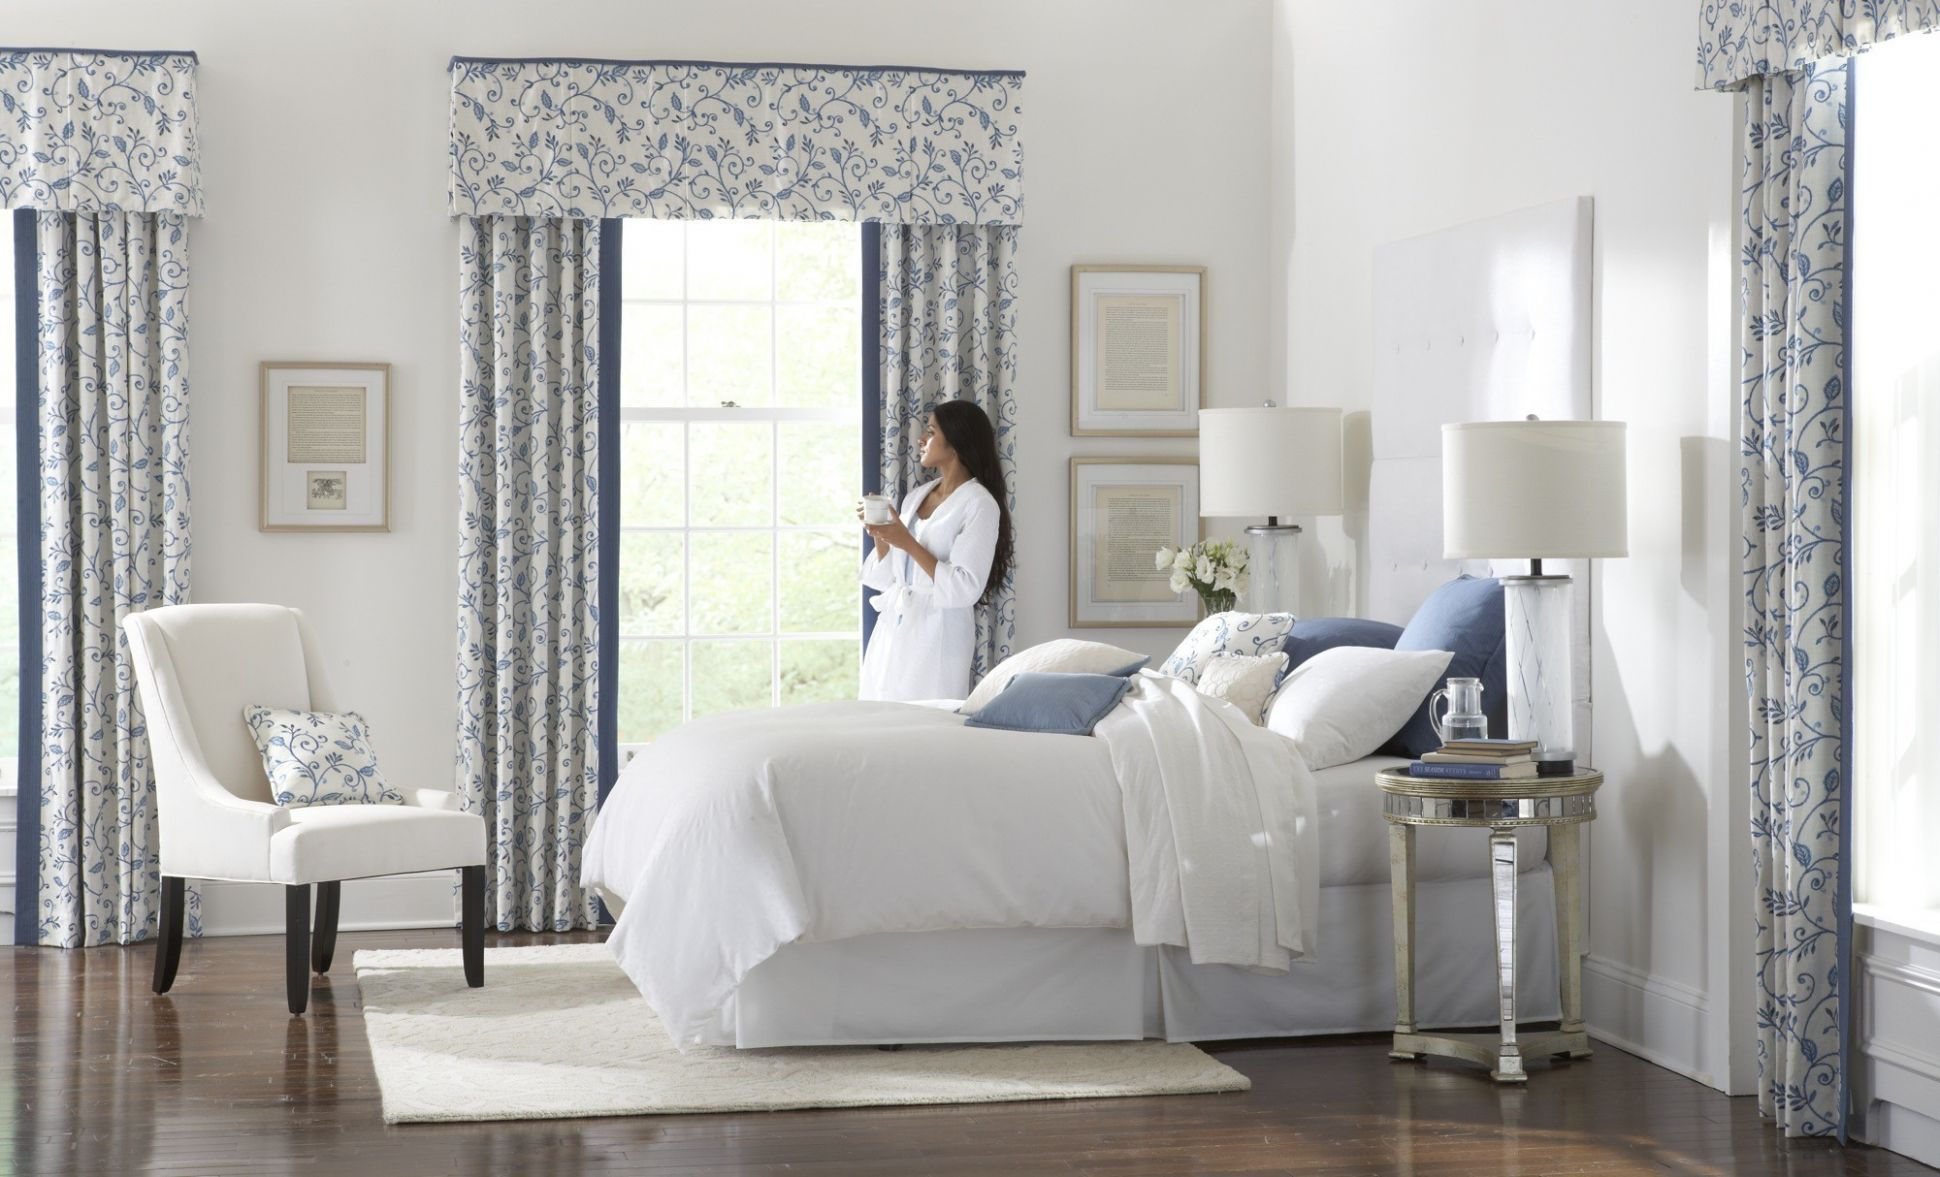 Window Treatment Ideas For Bedrooms How High To Hang The Bedroom ..